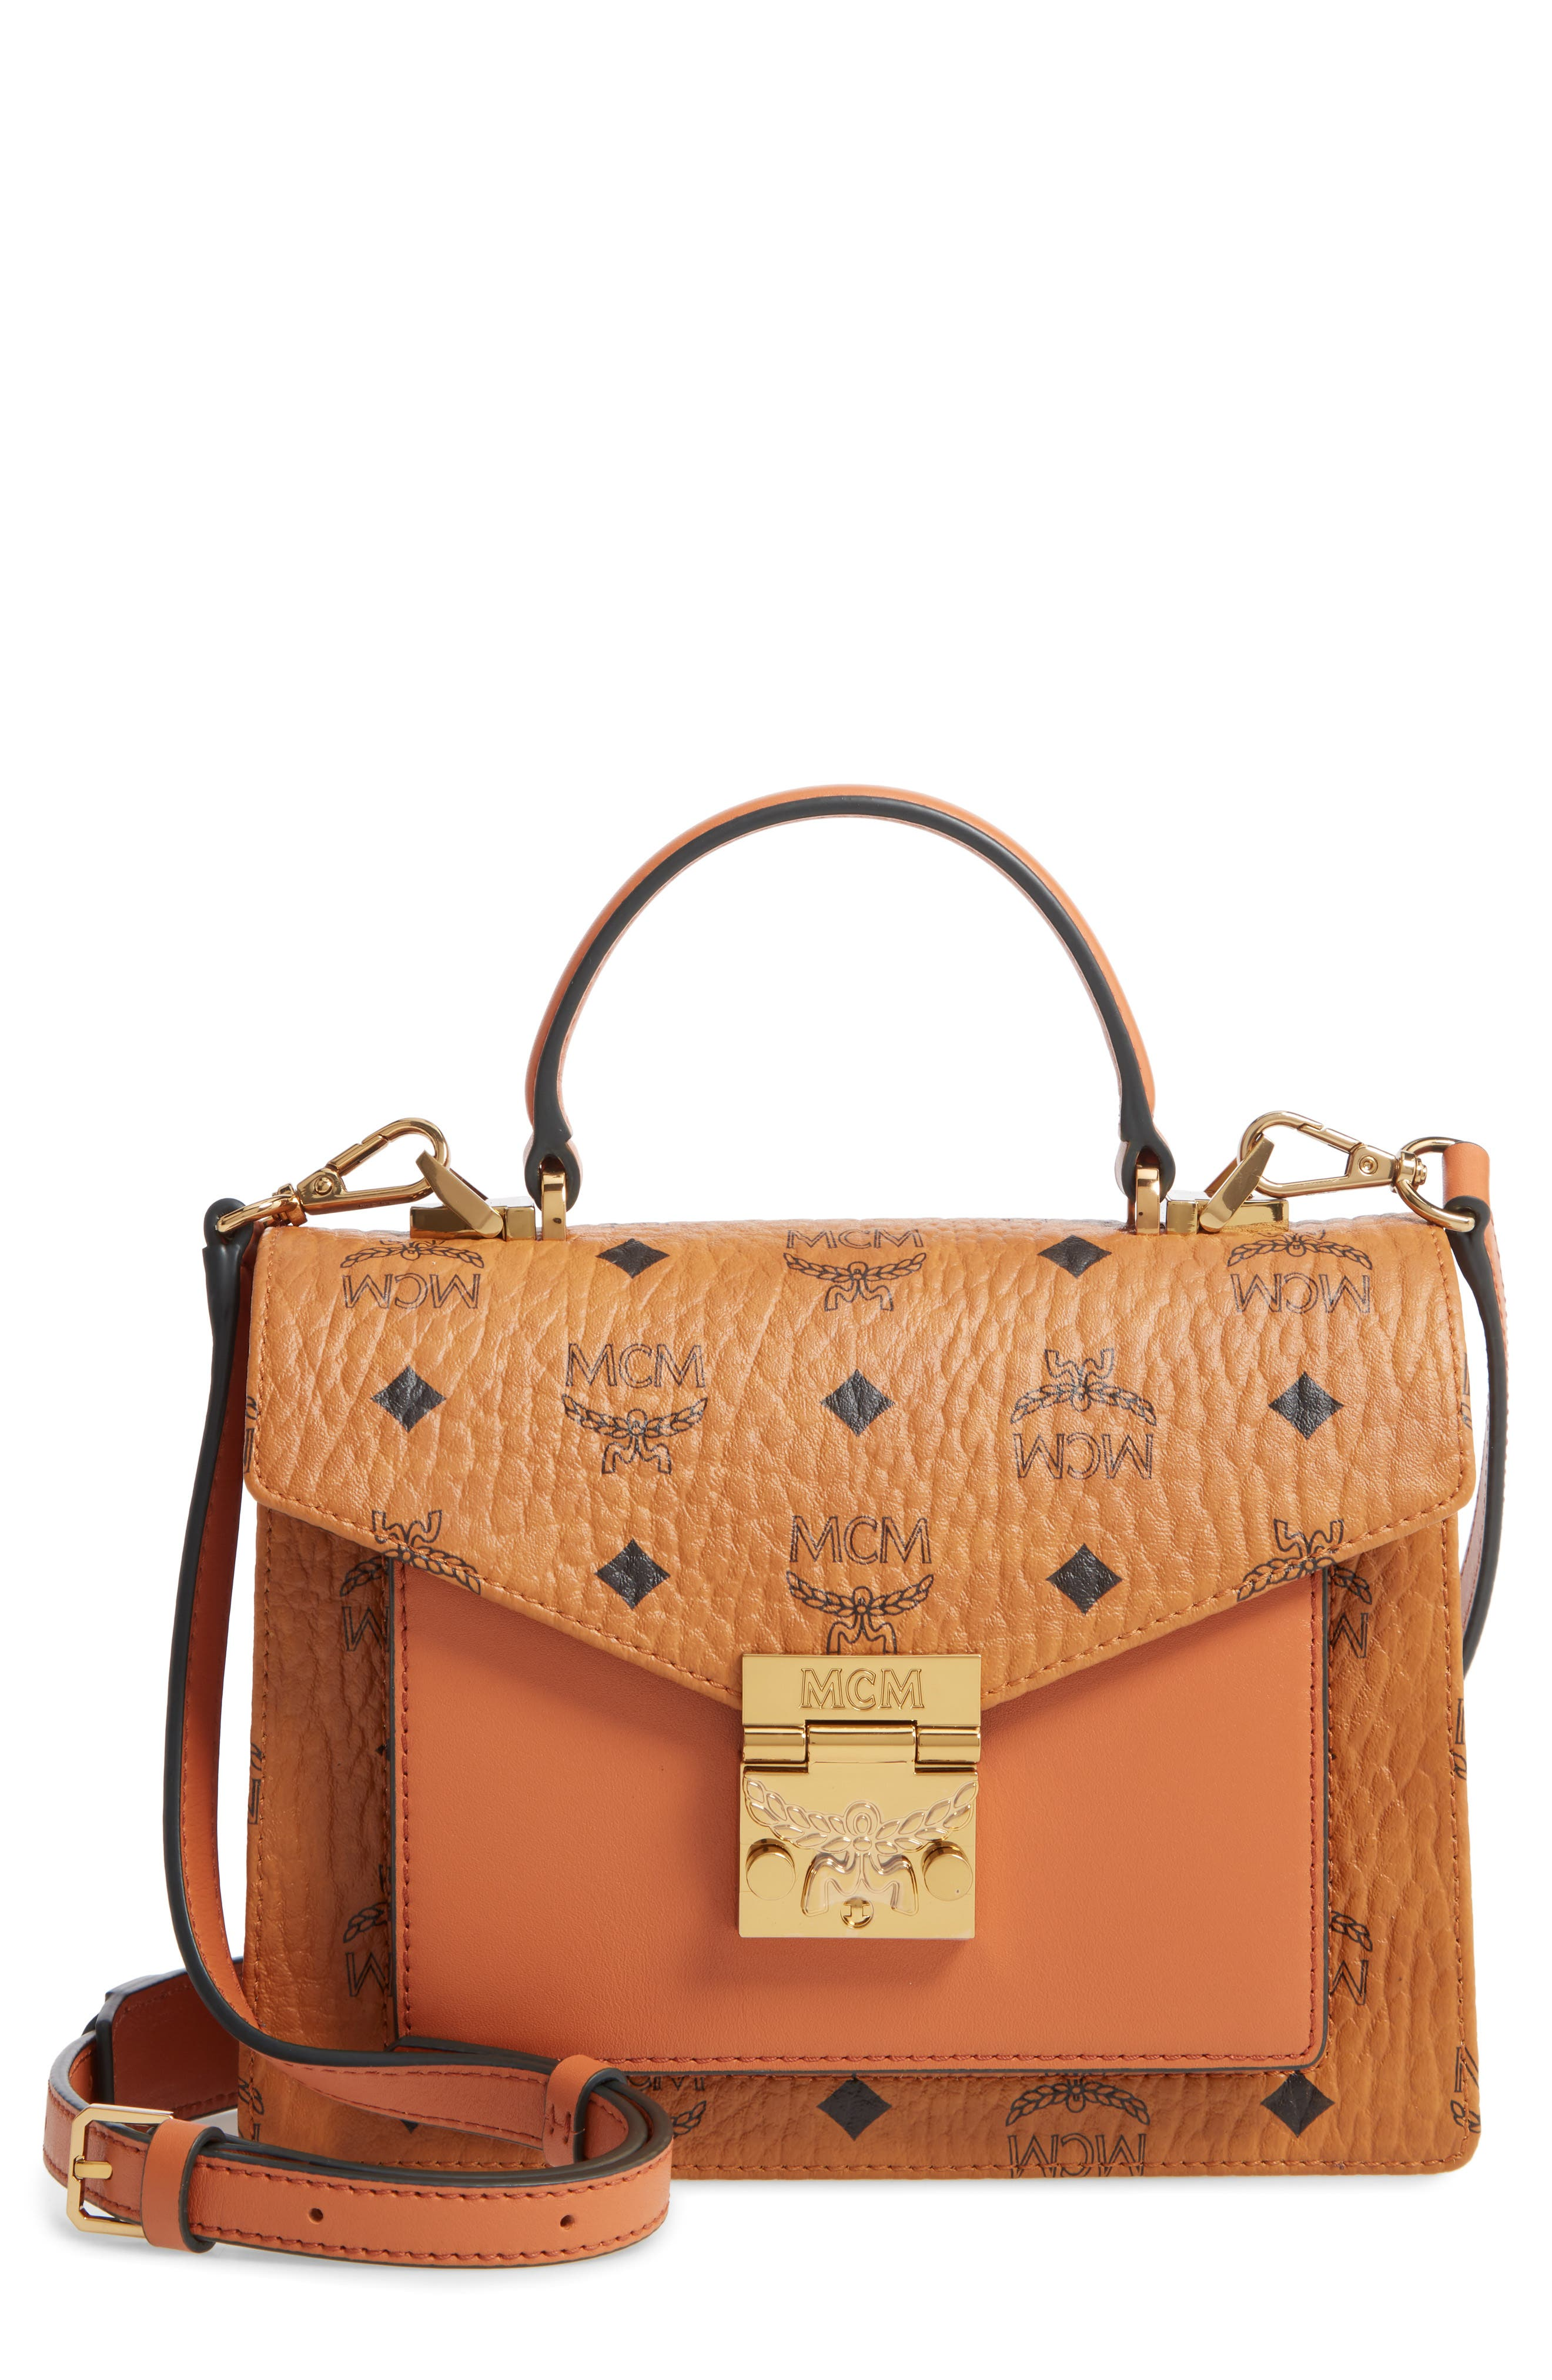 Mcm Coats Small Patricia Visetos Coated Canvas & Leather Satchel